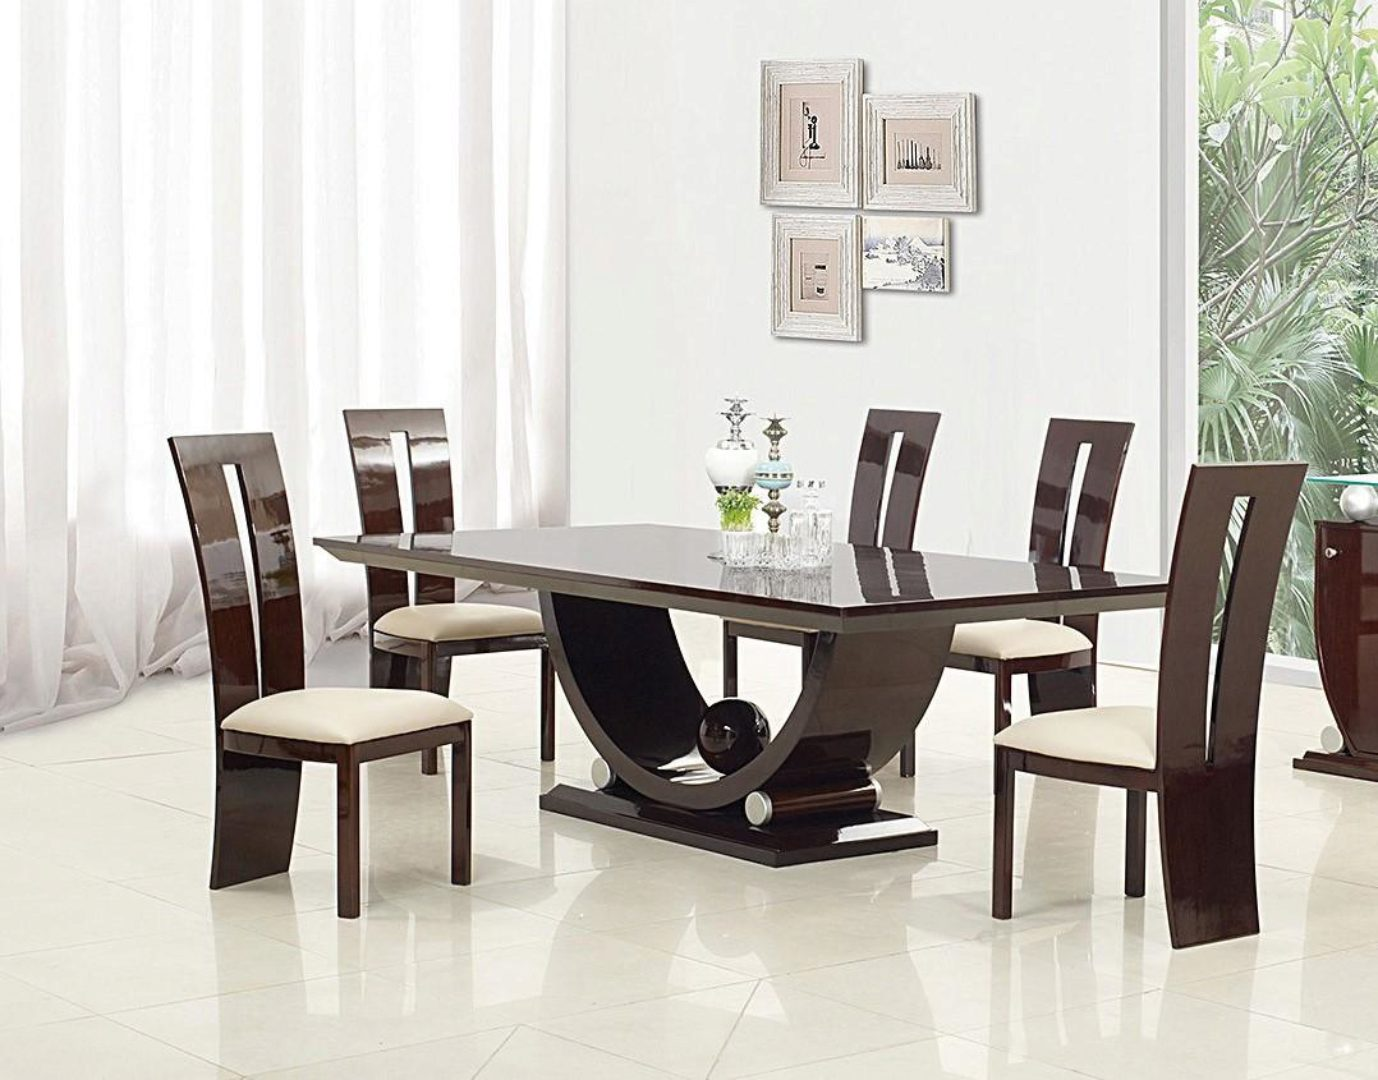 Dark Brown Lacquer Finish Dining Room Set 7pcs Contemporary Global United D12117 D12117 Dining Set 7